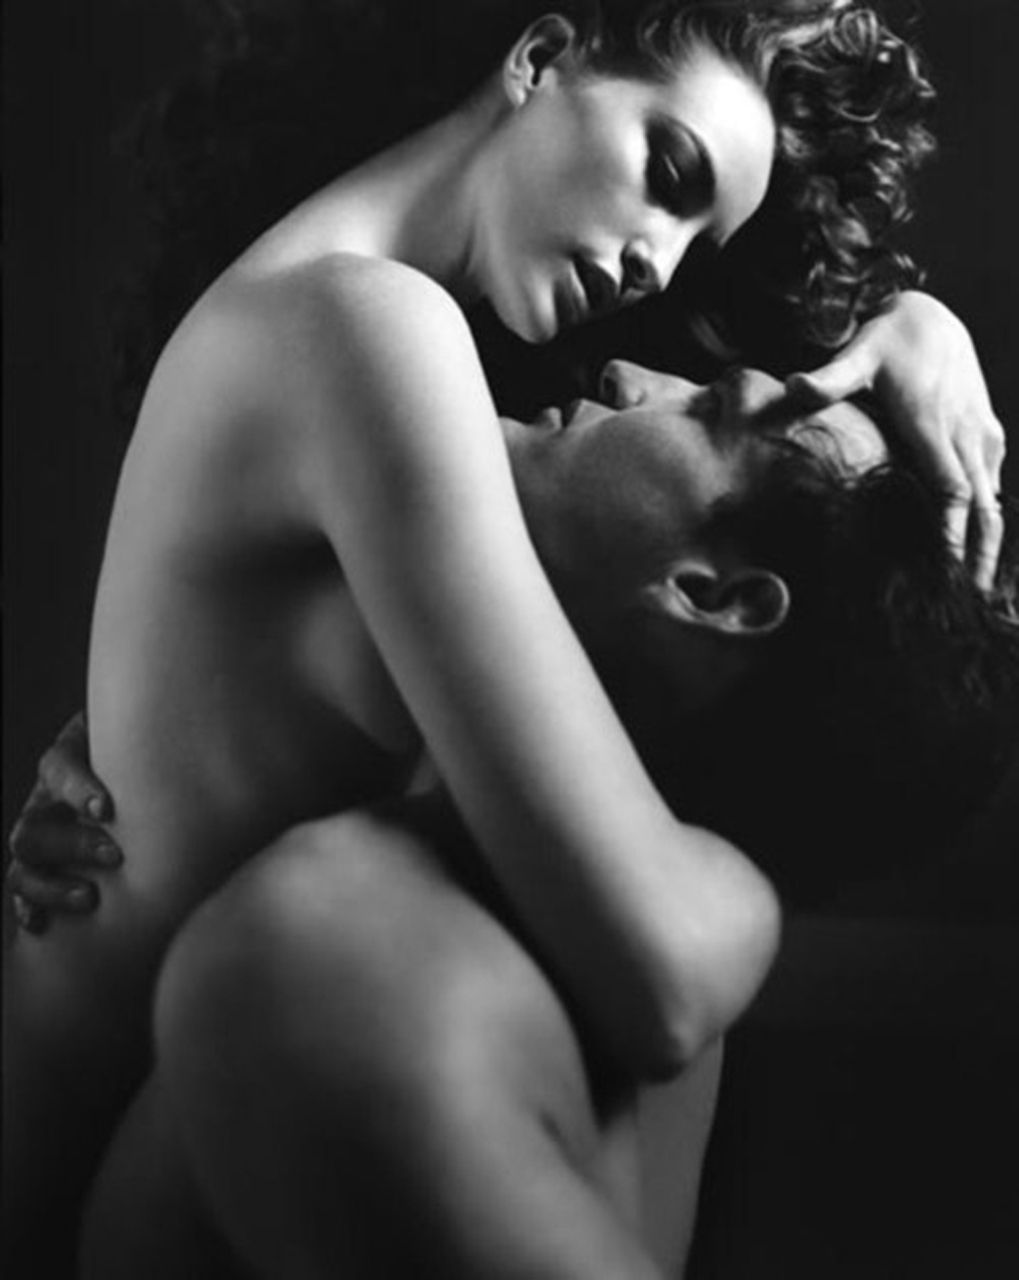 i want you lush body..naked before my eyes.. your softness..your